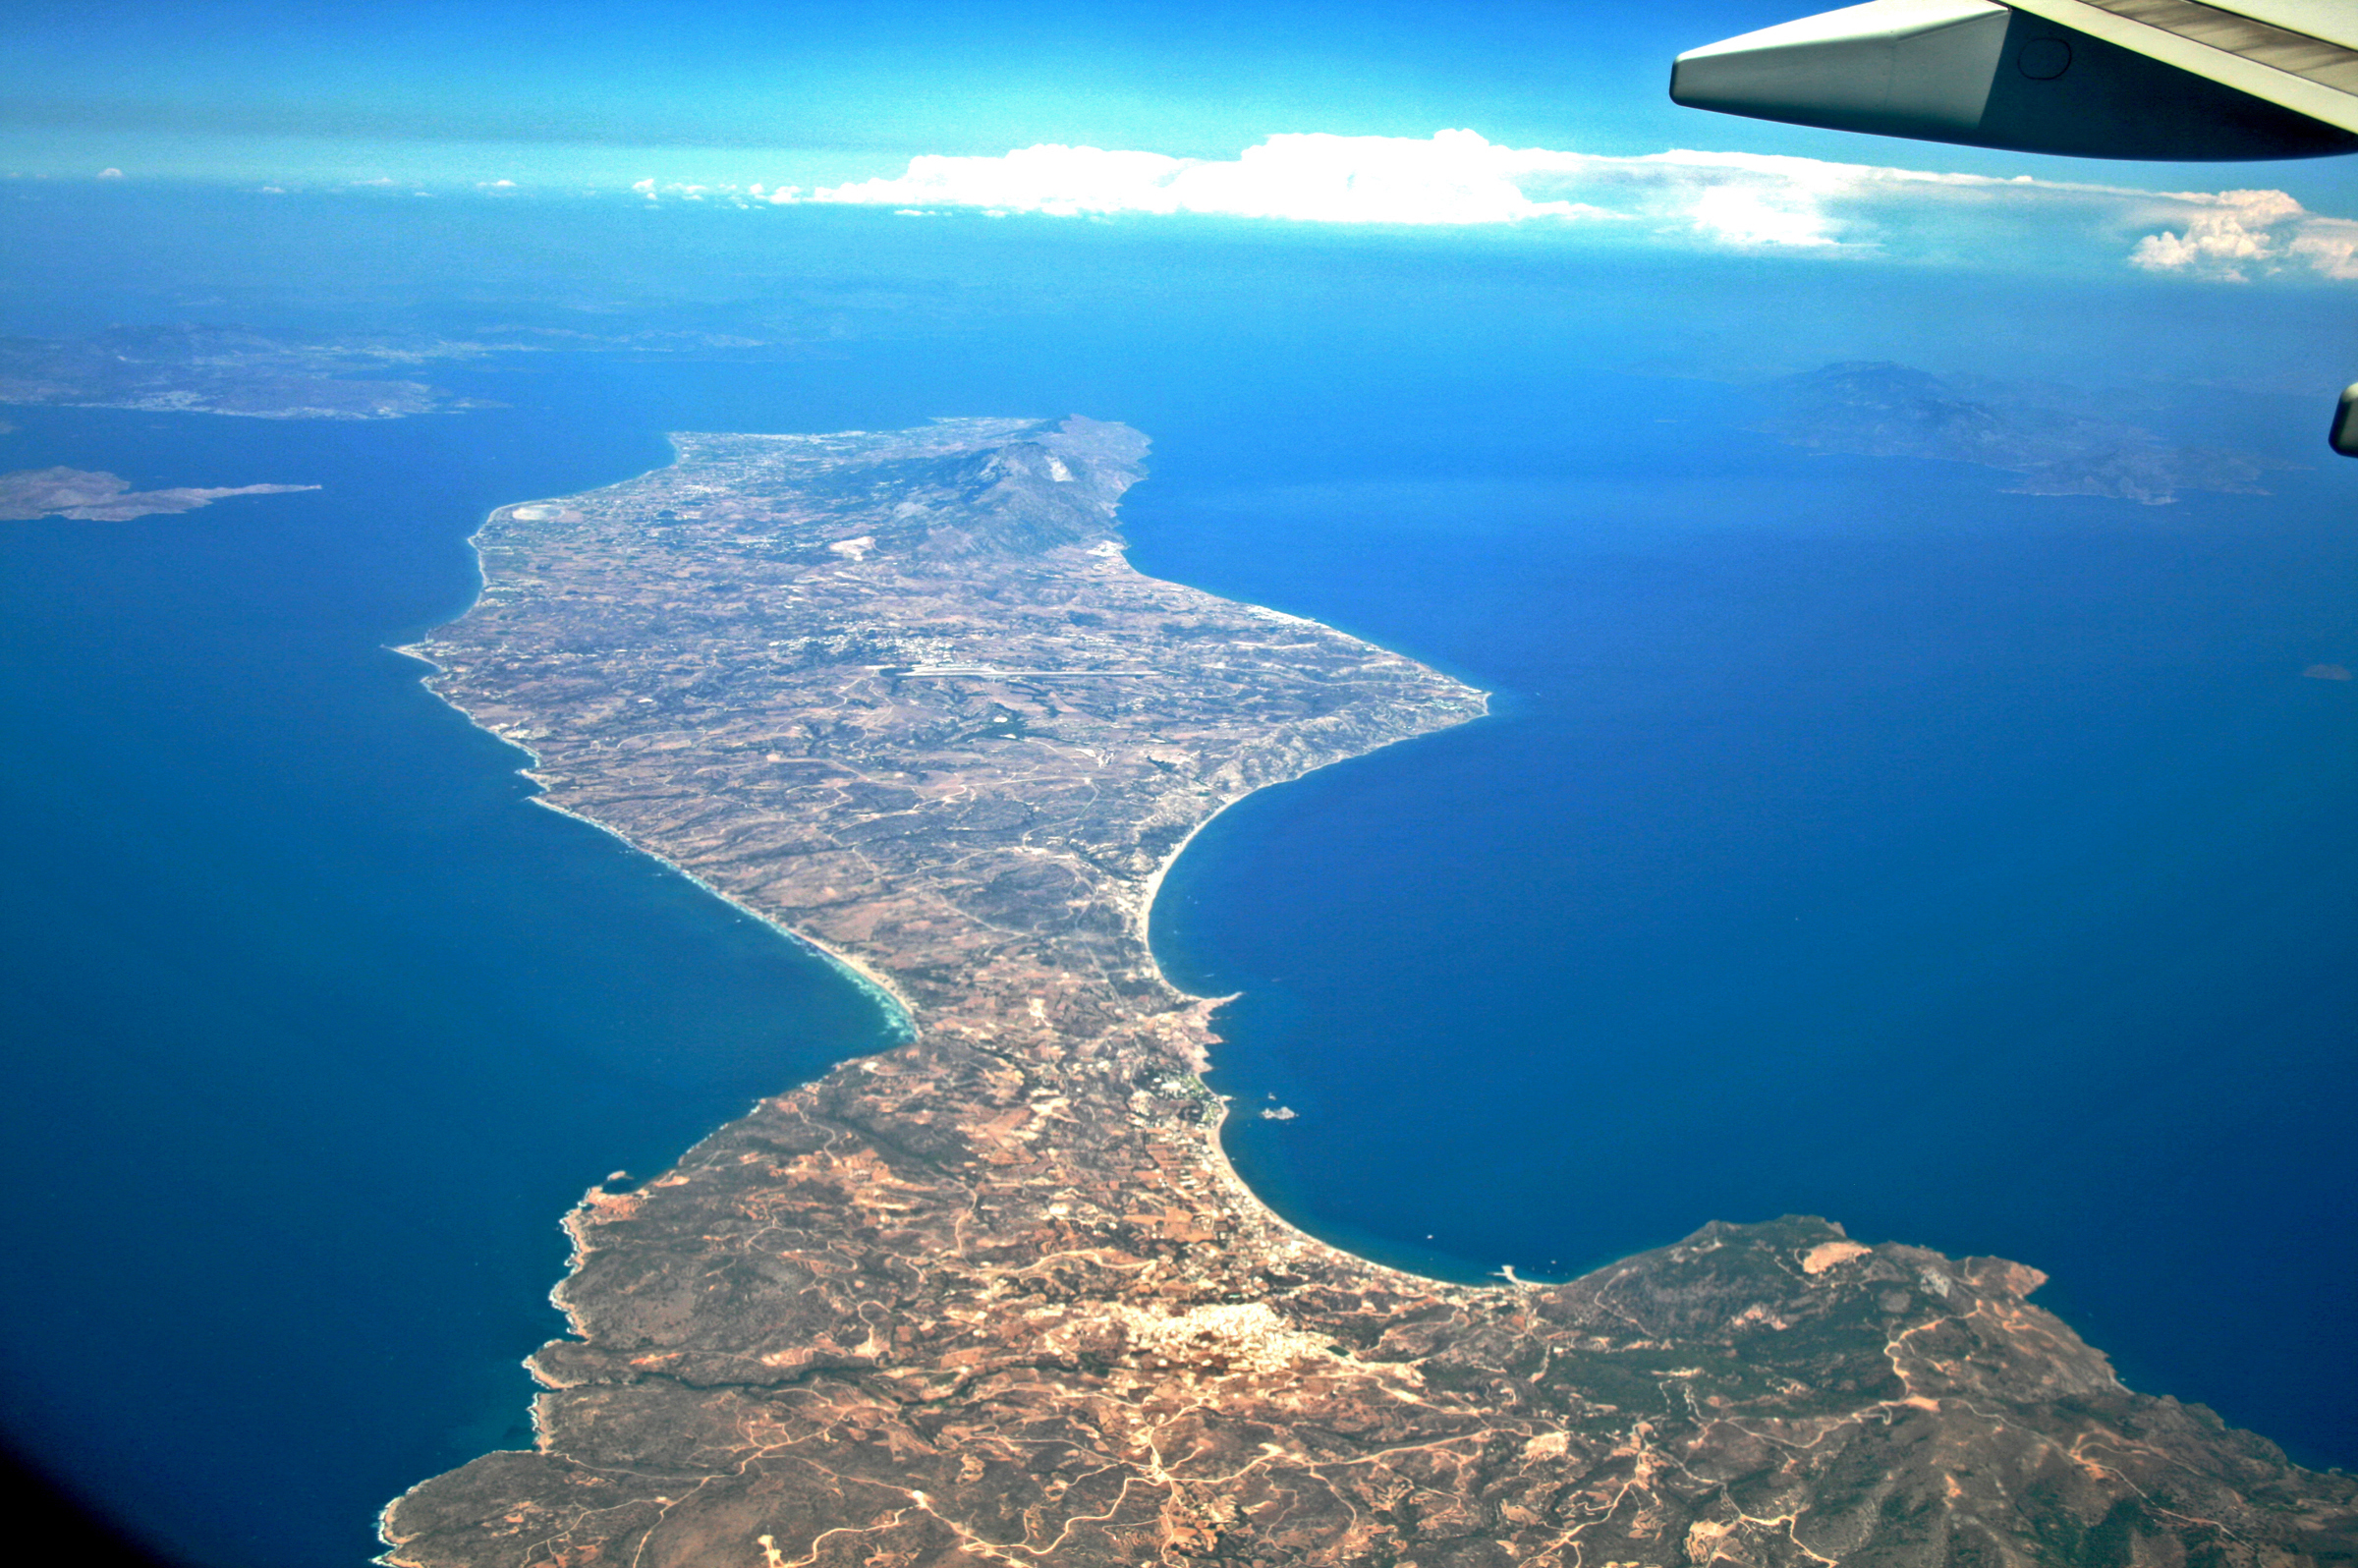 Gallery images and information kos greece nightlife - Click To Enlarge The Island Of Kos For Aircraft Author Karelj Click To Enlarge The Image